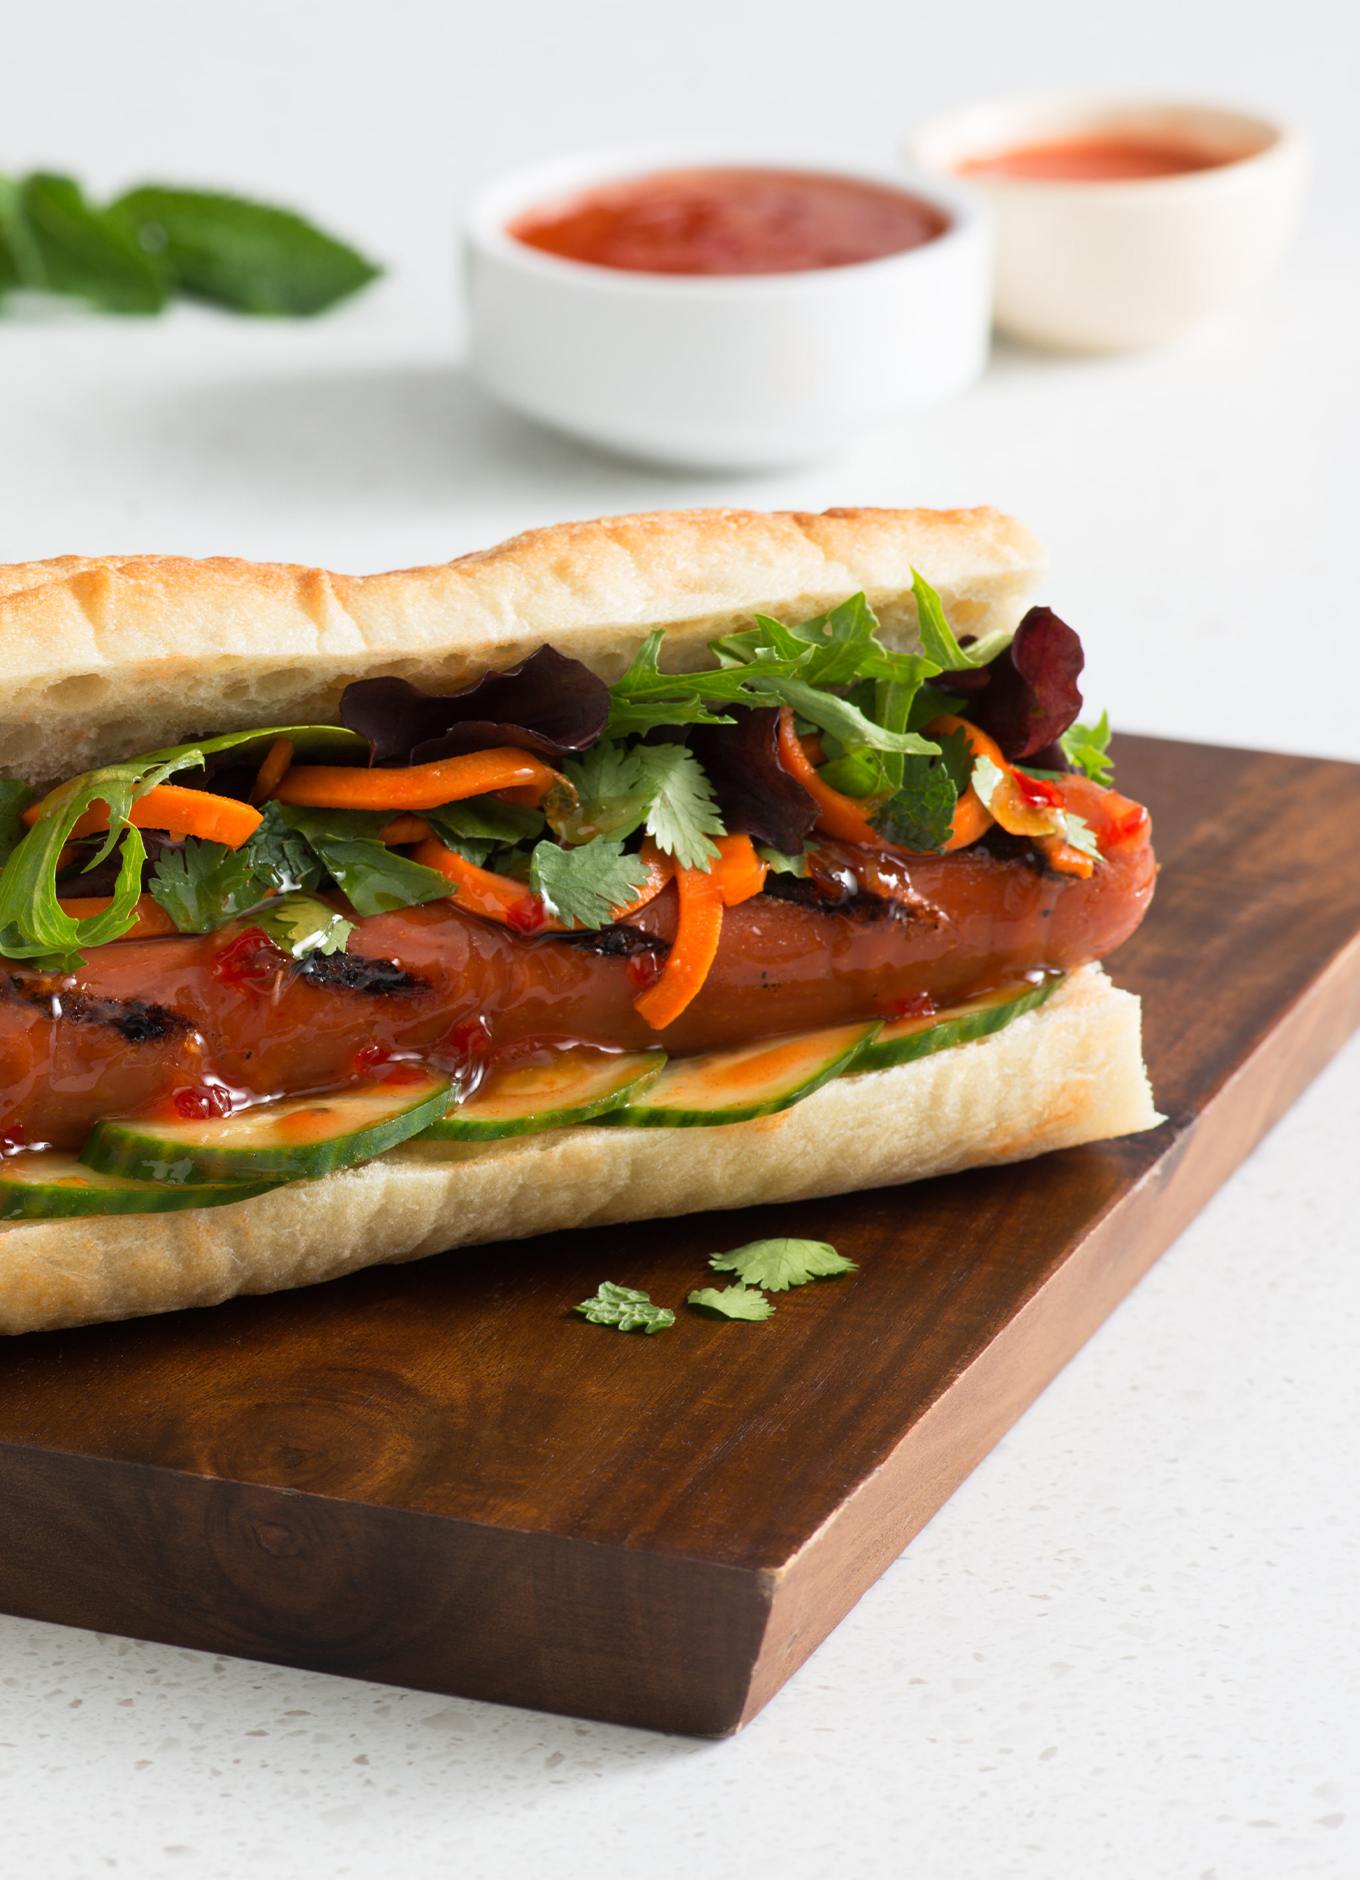 Two Bahn Mi Hot Dogs, topped with cucumber, carrot and salad greens, on a wooden tray.